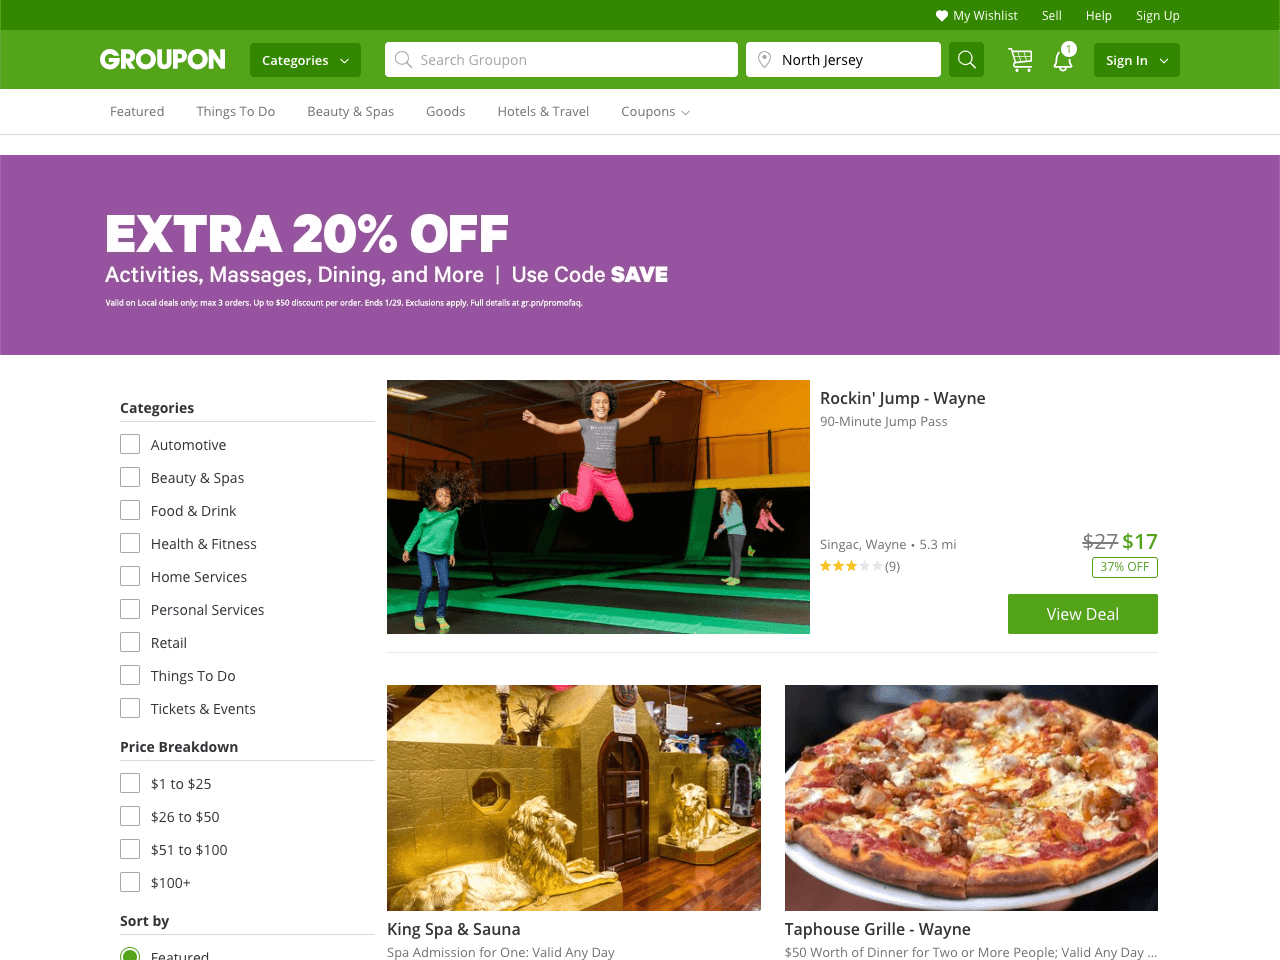 iHerb draws visitors' attention to its flash sale coupled with other offers